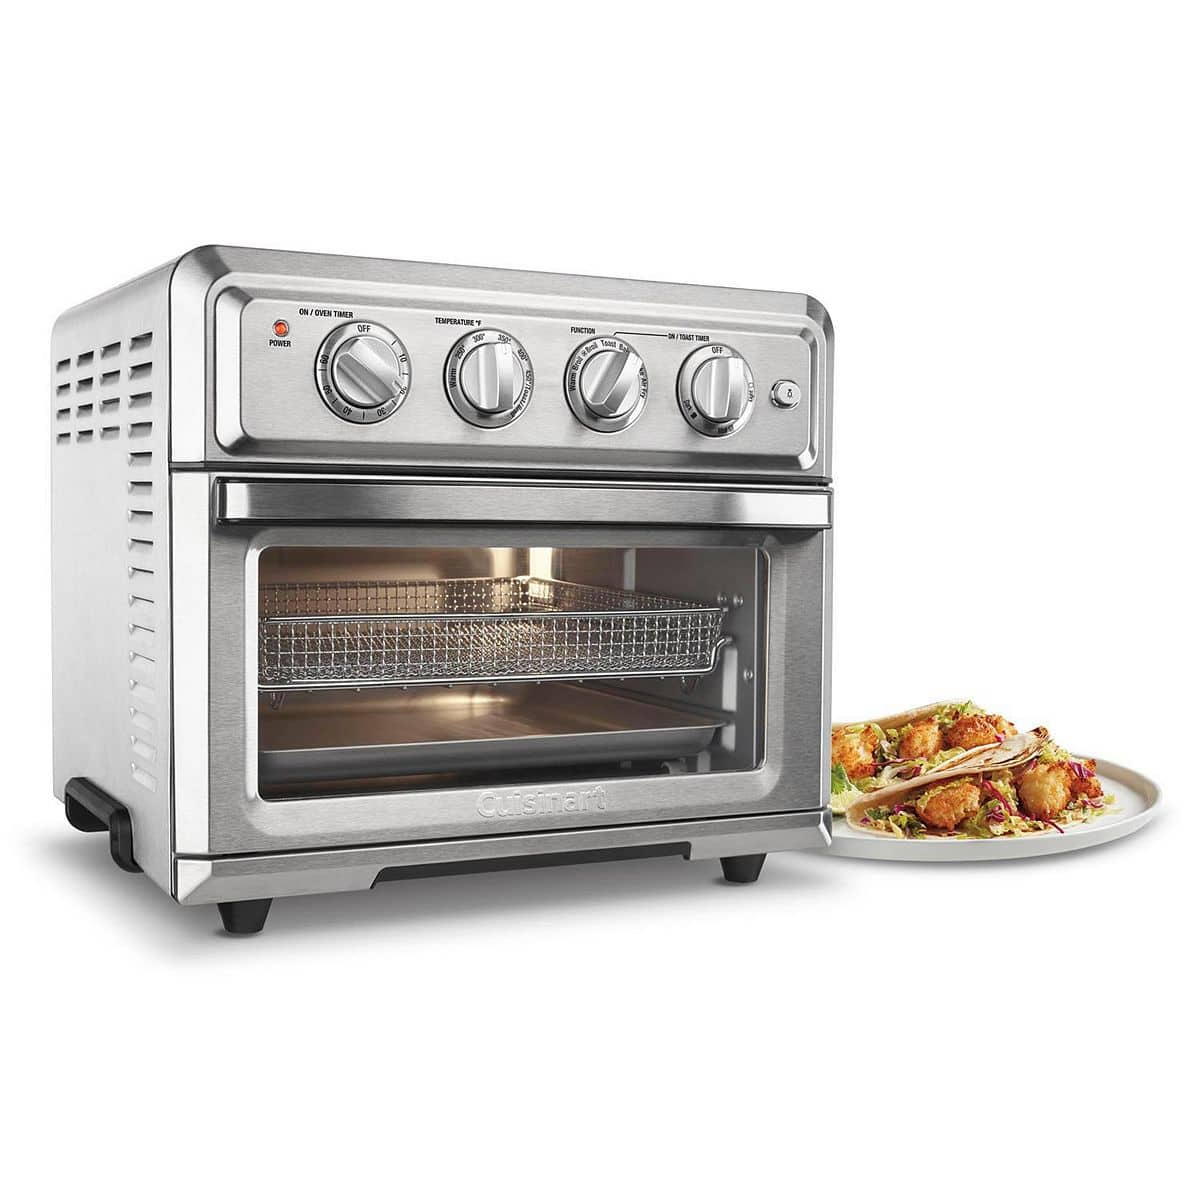 Cuisinart AirFryer Toaster Oven (TOA-60) + $20 in Kohls Cash $136 + free shipping